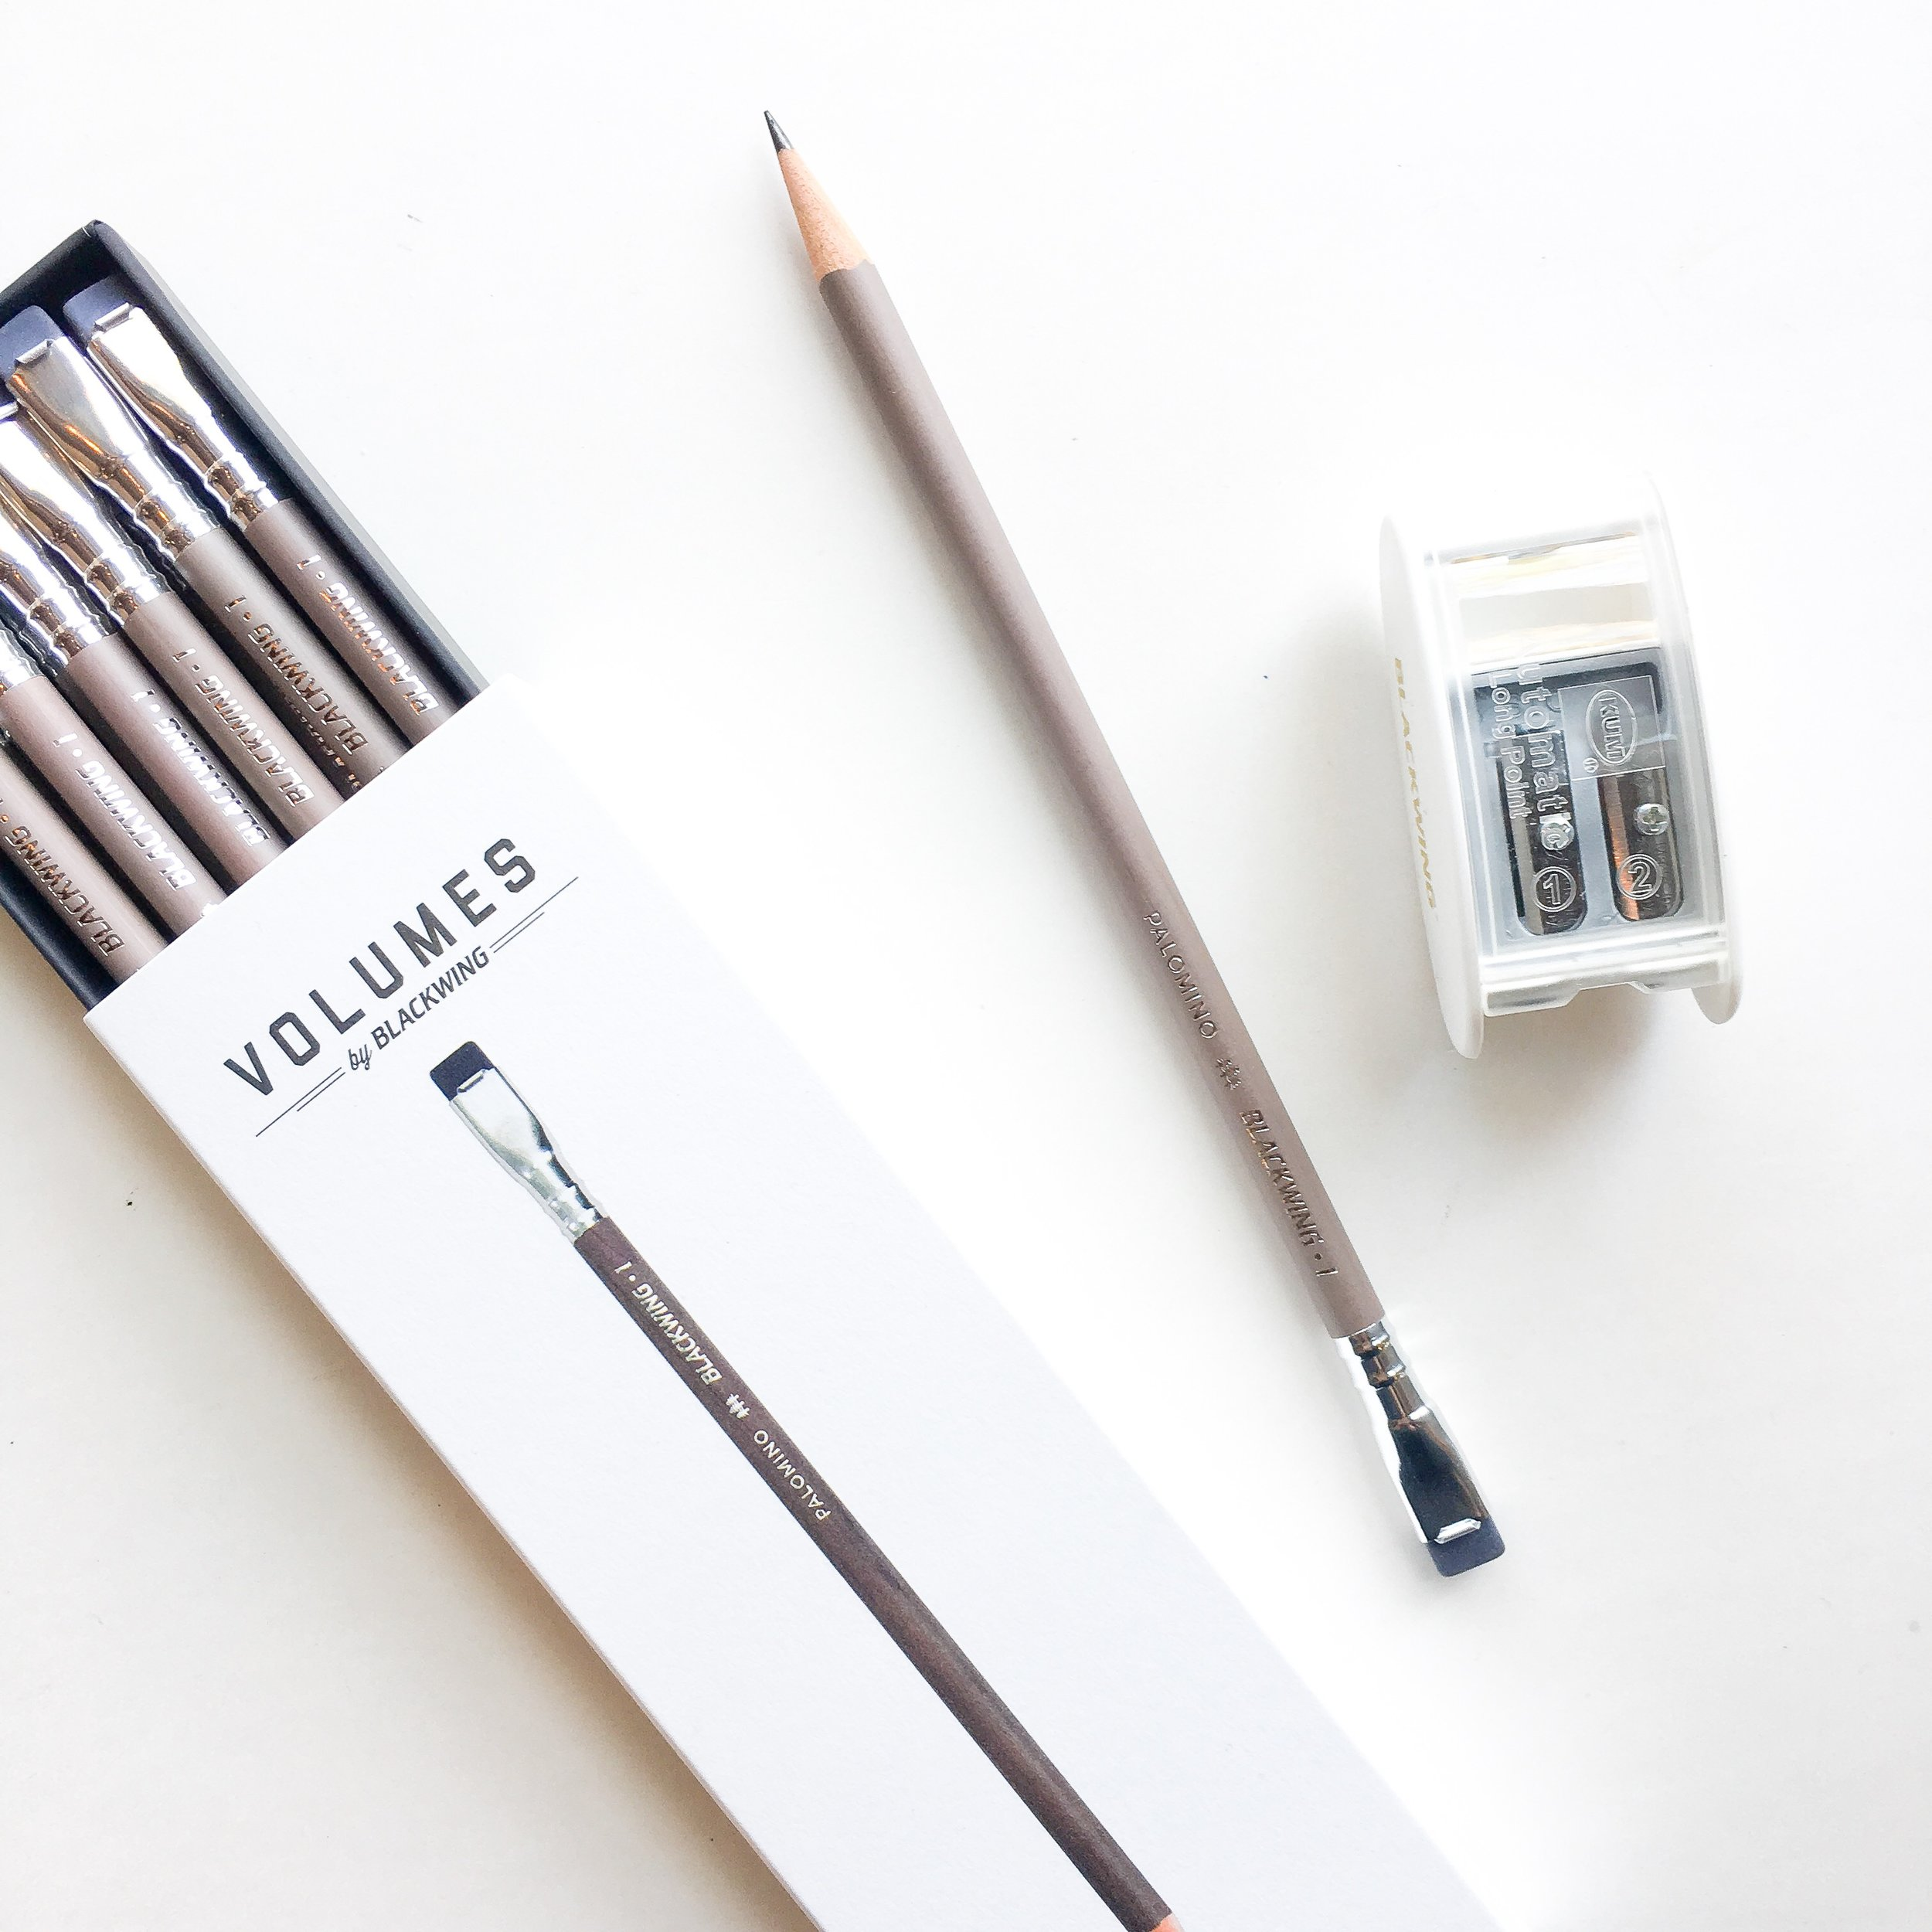 Blackwing Limited Ed Volumes 1 (1).jpgTHE BLACKWING PENCIL: M.LOVEWELL BLOG